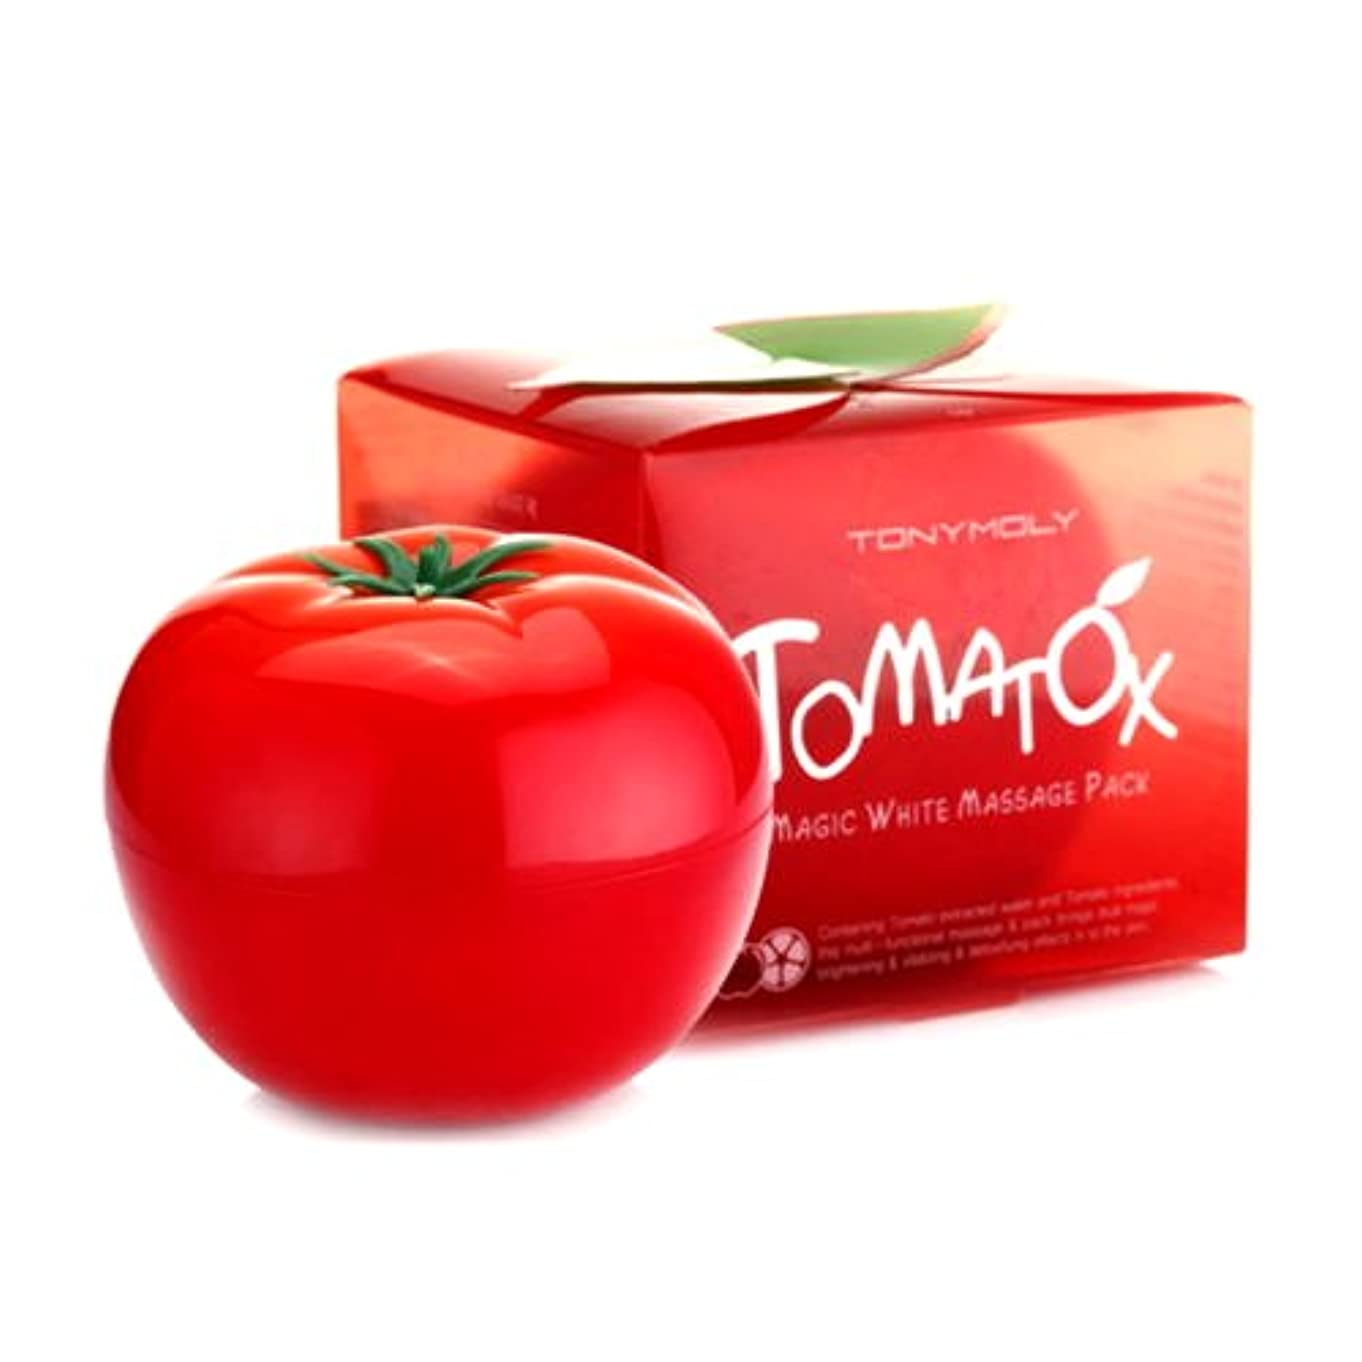 沈黙襟再開(3 Pack) TONYMOLY Tomatox Magic Massage Pack (並行輸入品)